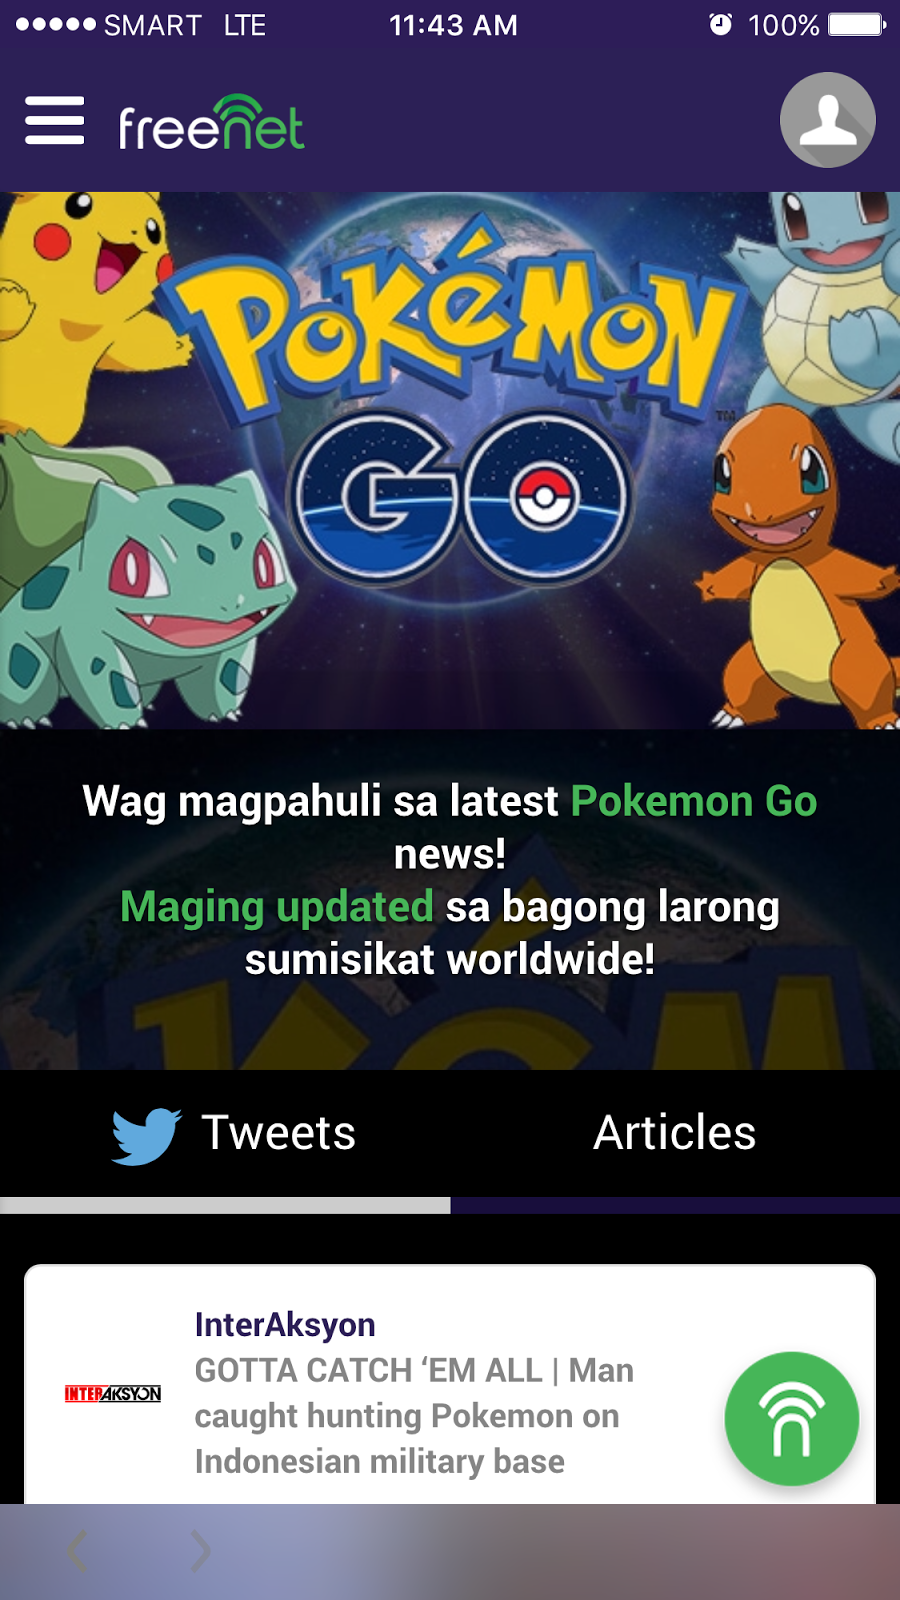 Get Pokemon GO updates with freenet